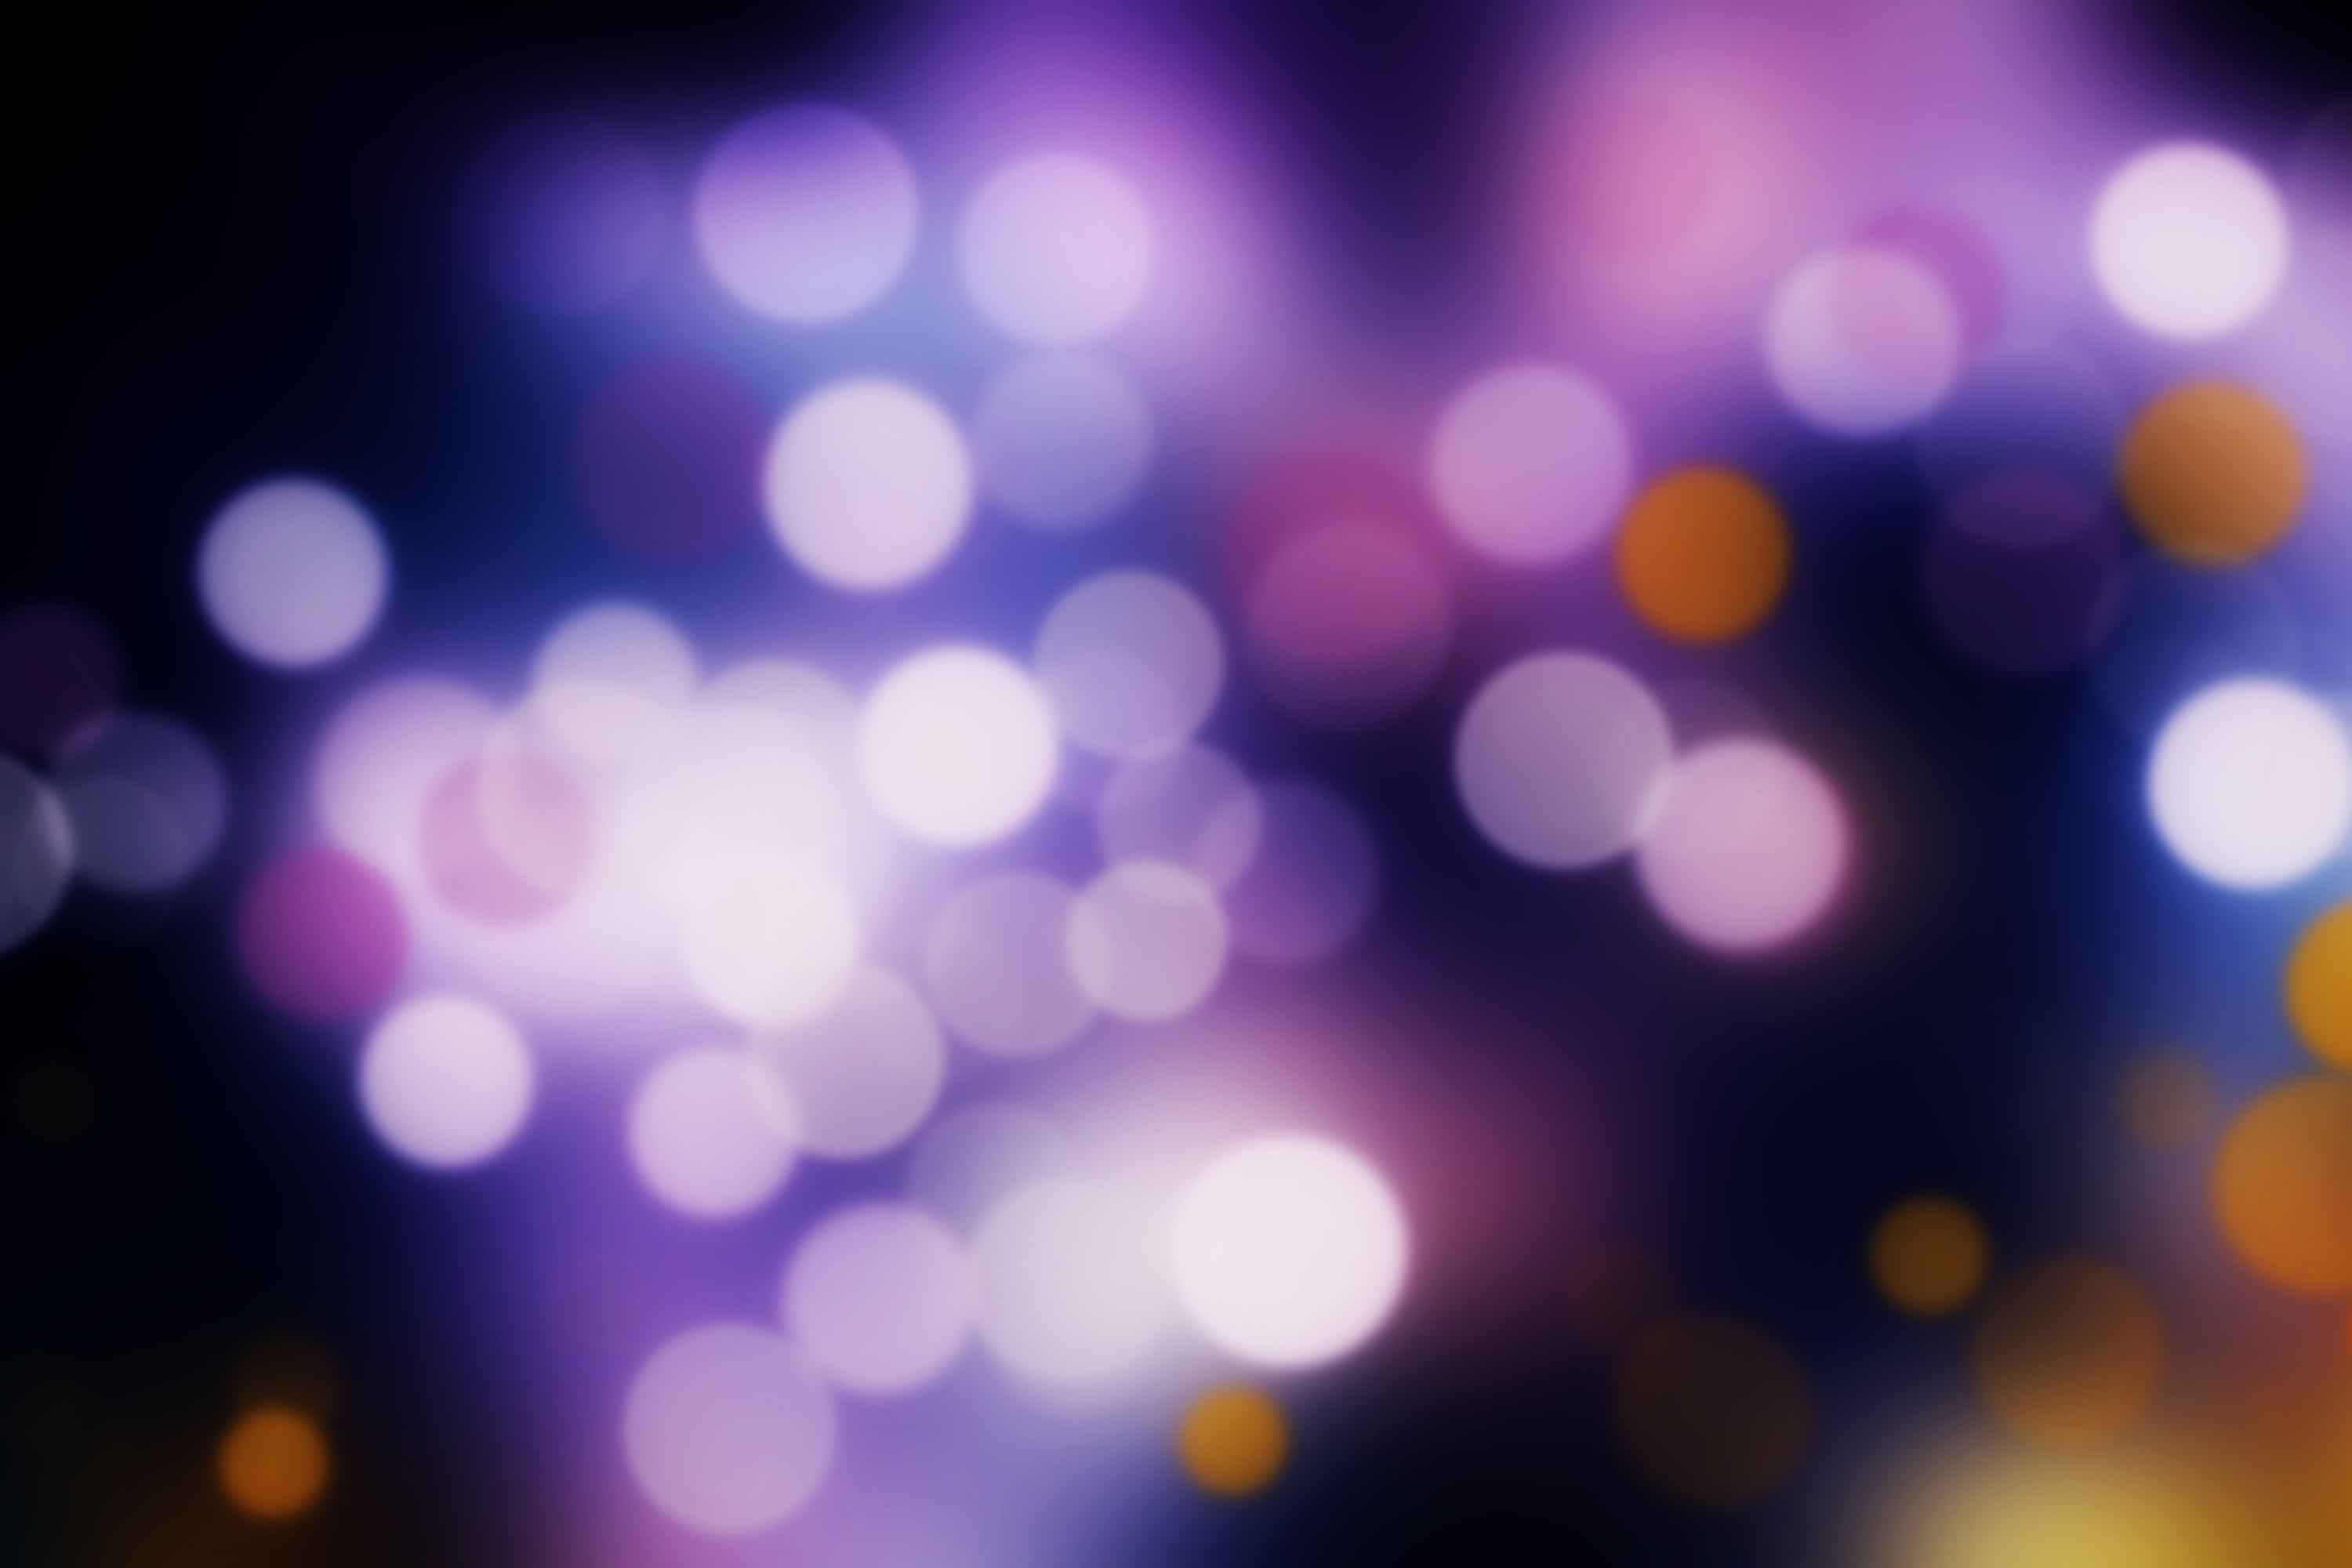 15 Bokeh Photoshop Brushes abr. - Scatter & Dynamics example image 4